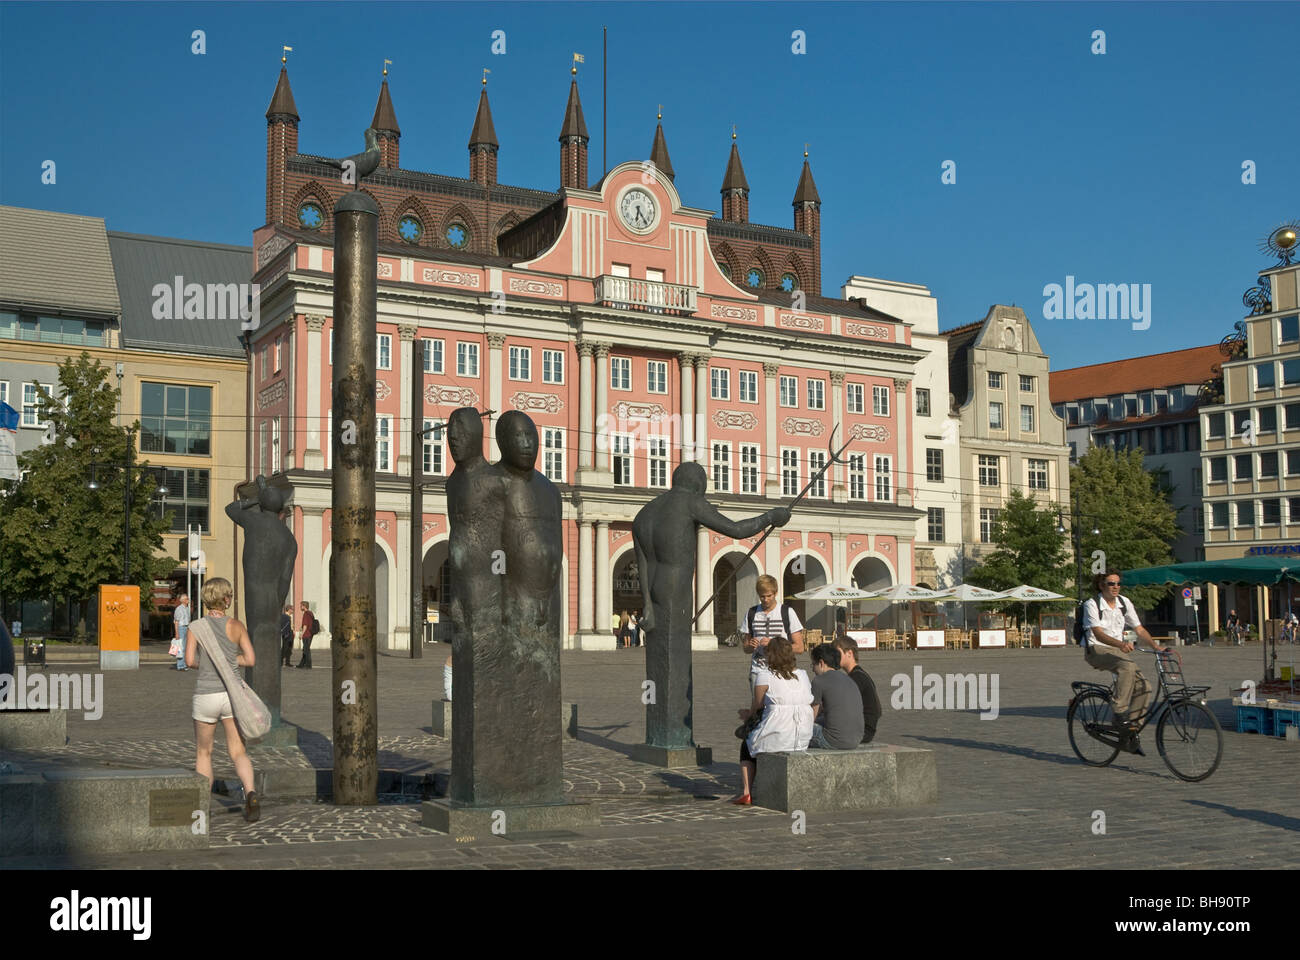 Statues and Town Hall at Neuer Markt in Rostock in Mecklenburg-West Pomerania, Germany - Stock Image